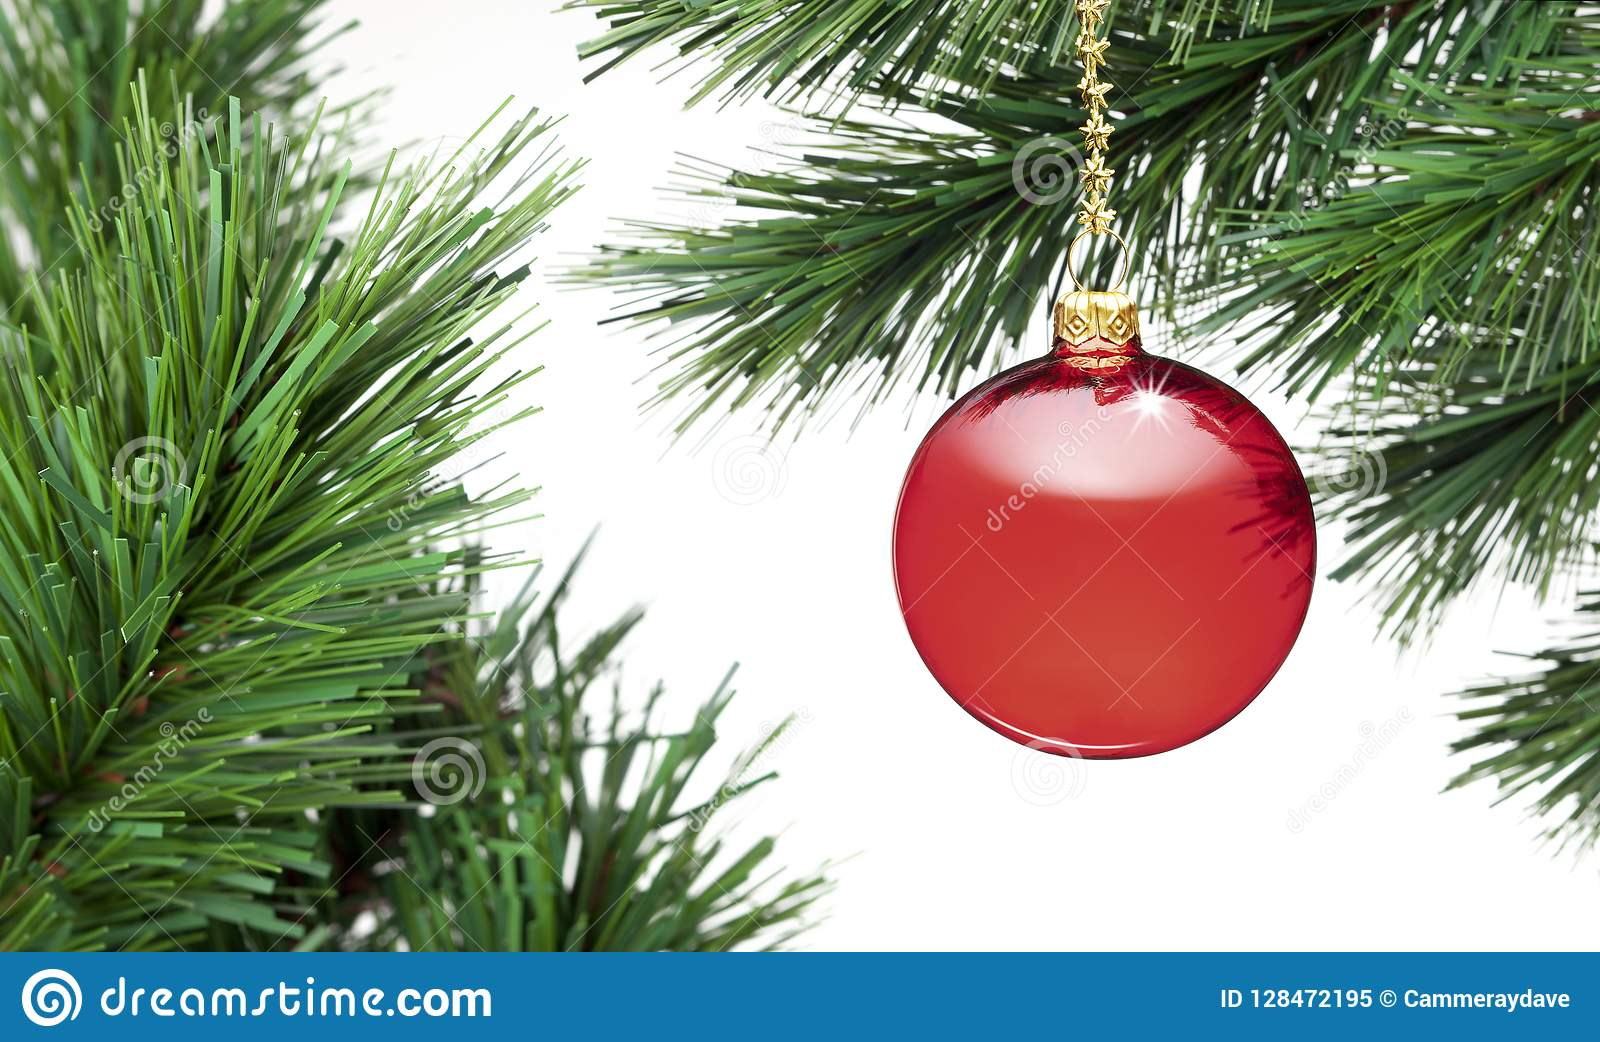 Christmas Tree Ornament Banner Background